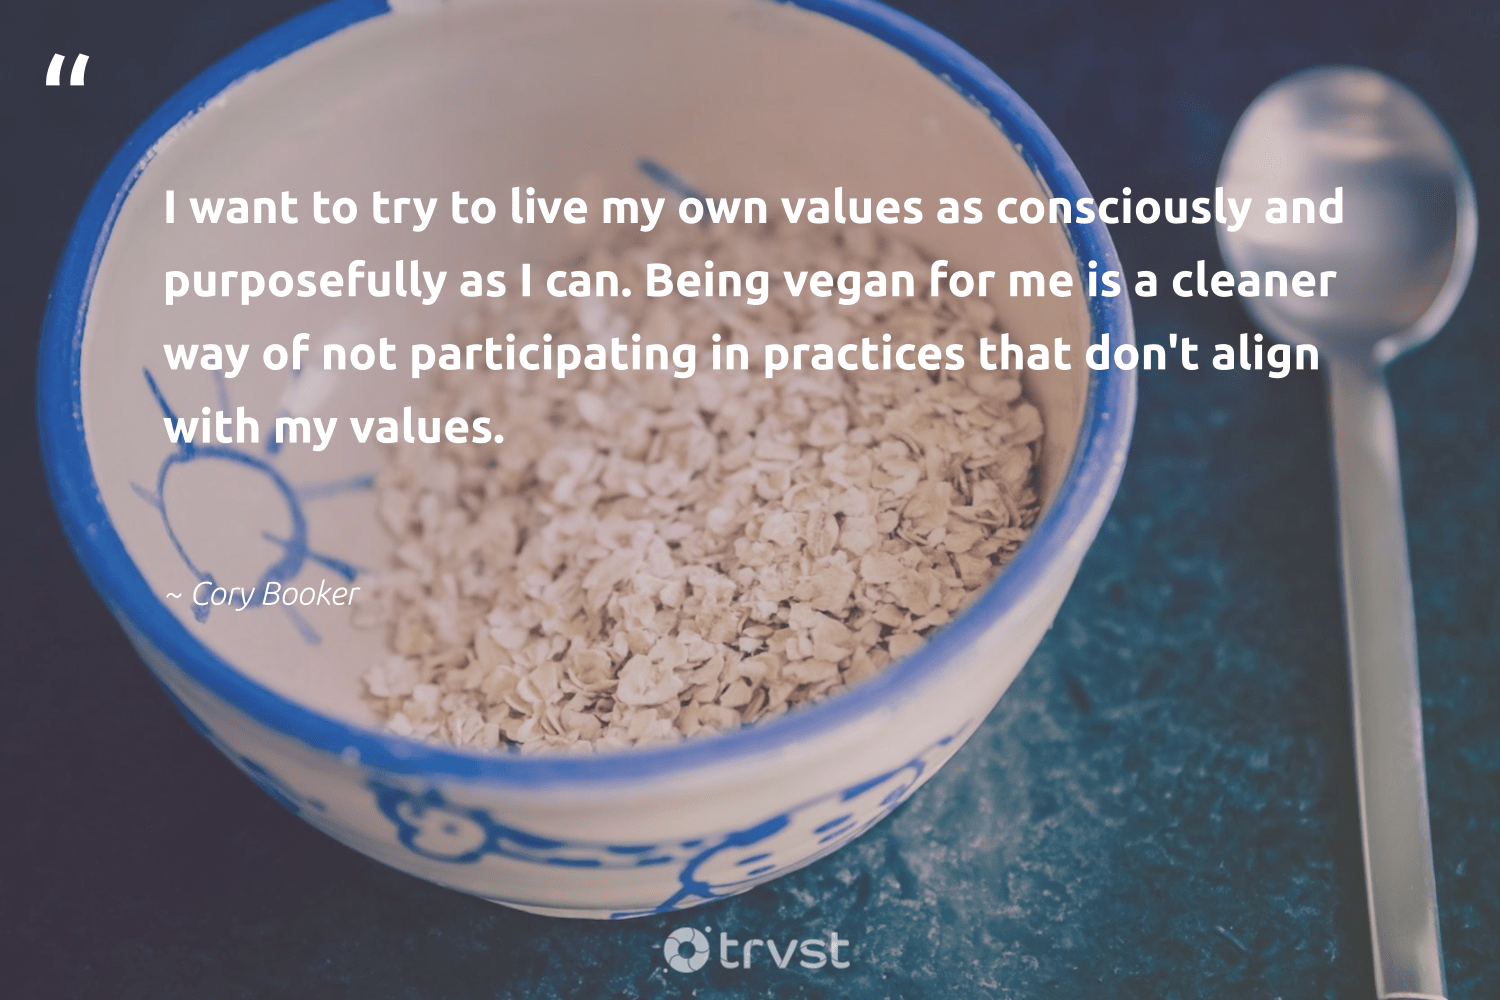 """I want to try to live my own values as consciously and purposefully as I can. Being vegan for me is a cleaner way of not participating in practices that don't align with my values.""  - Cory Booker #trvst #quotes #vegan #veganfoodshare #greenliving #bethechange #ecoconscious #veggie #fashion #green #gogreen #veganlife"